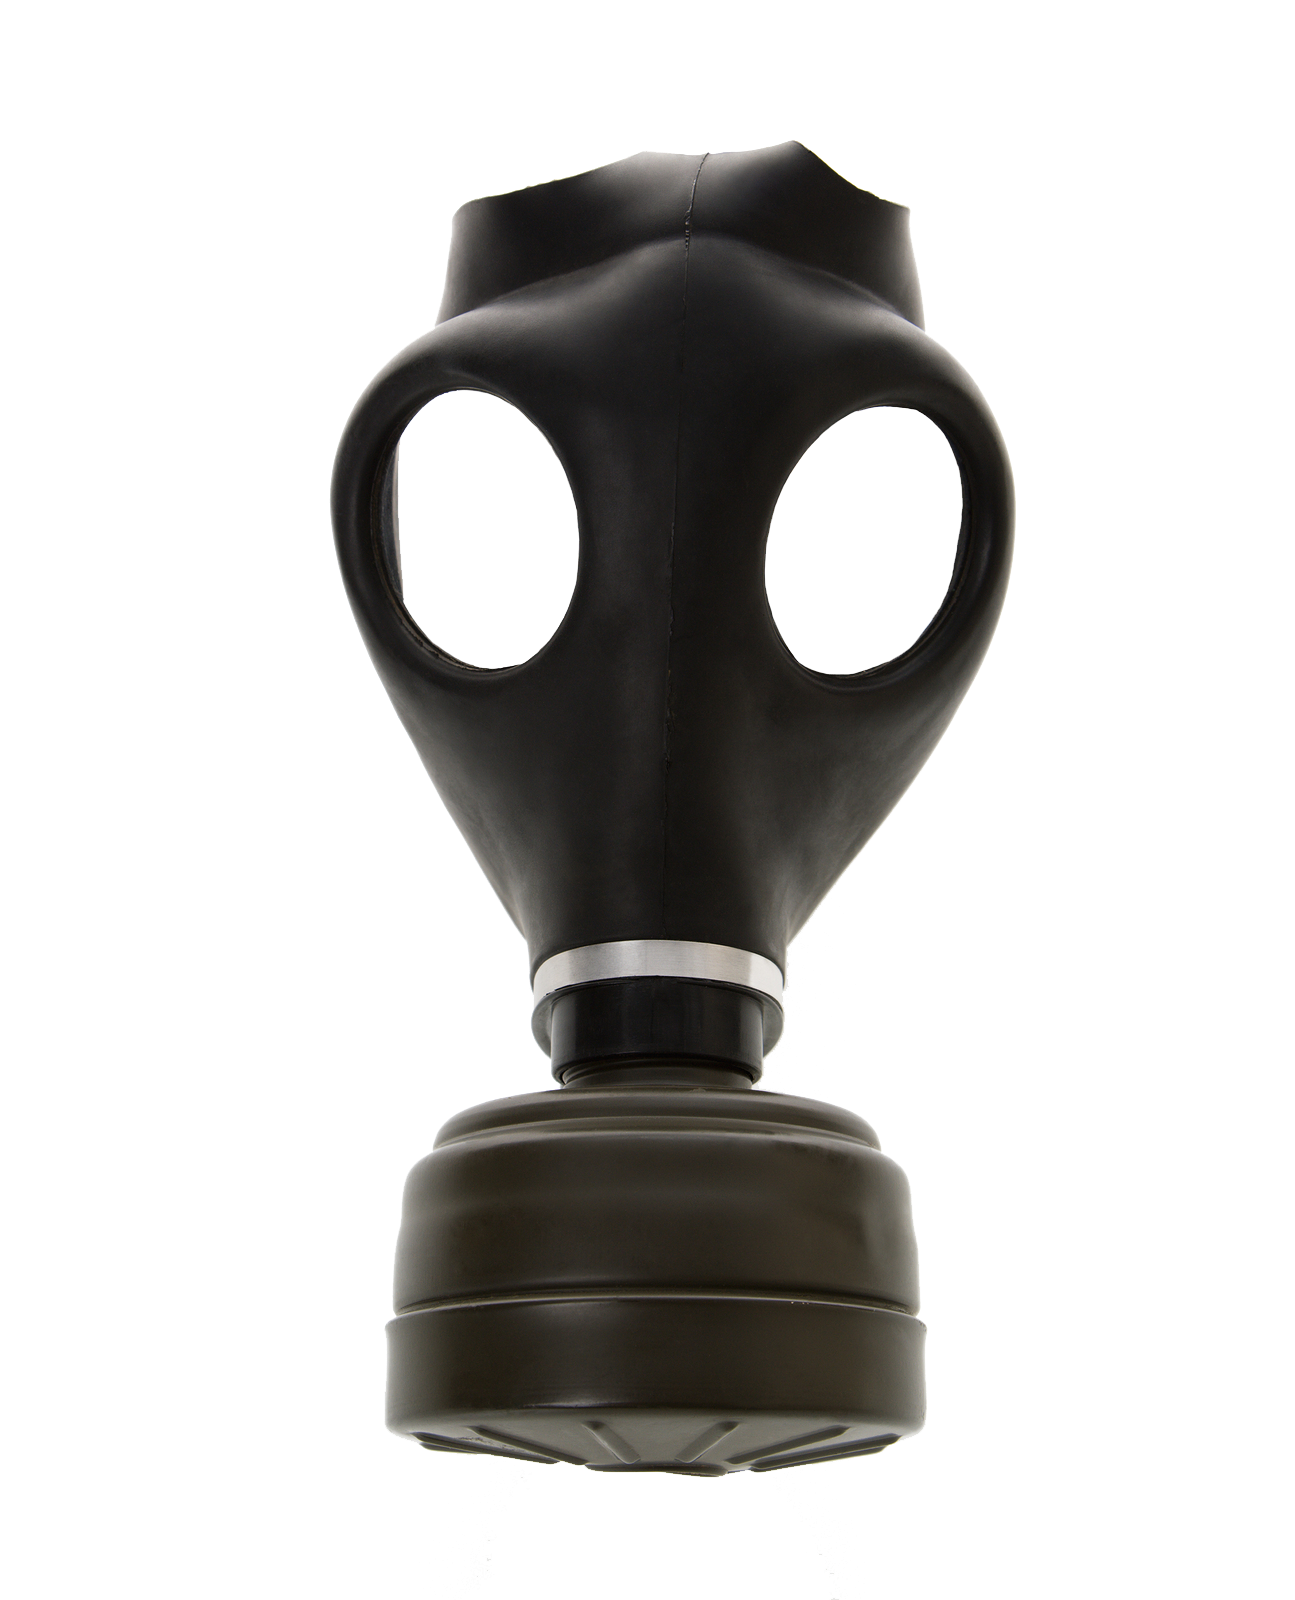 Gas mask png. Image purepng free transparent